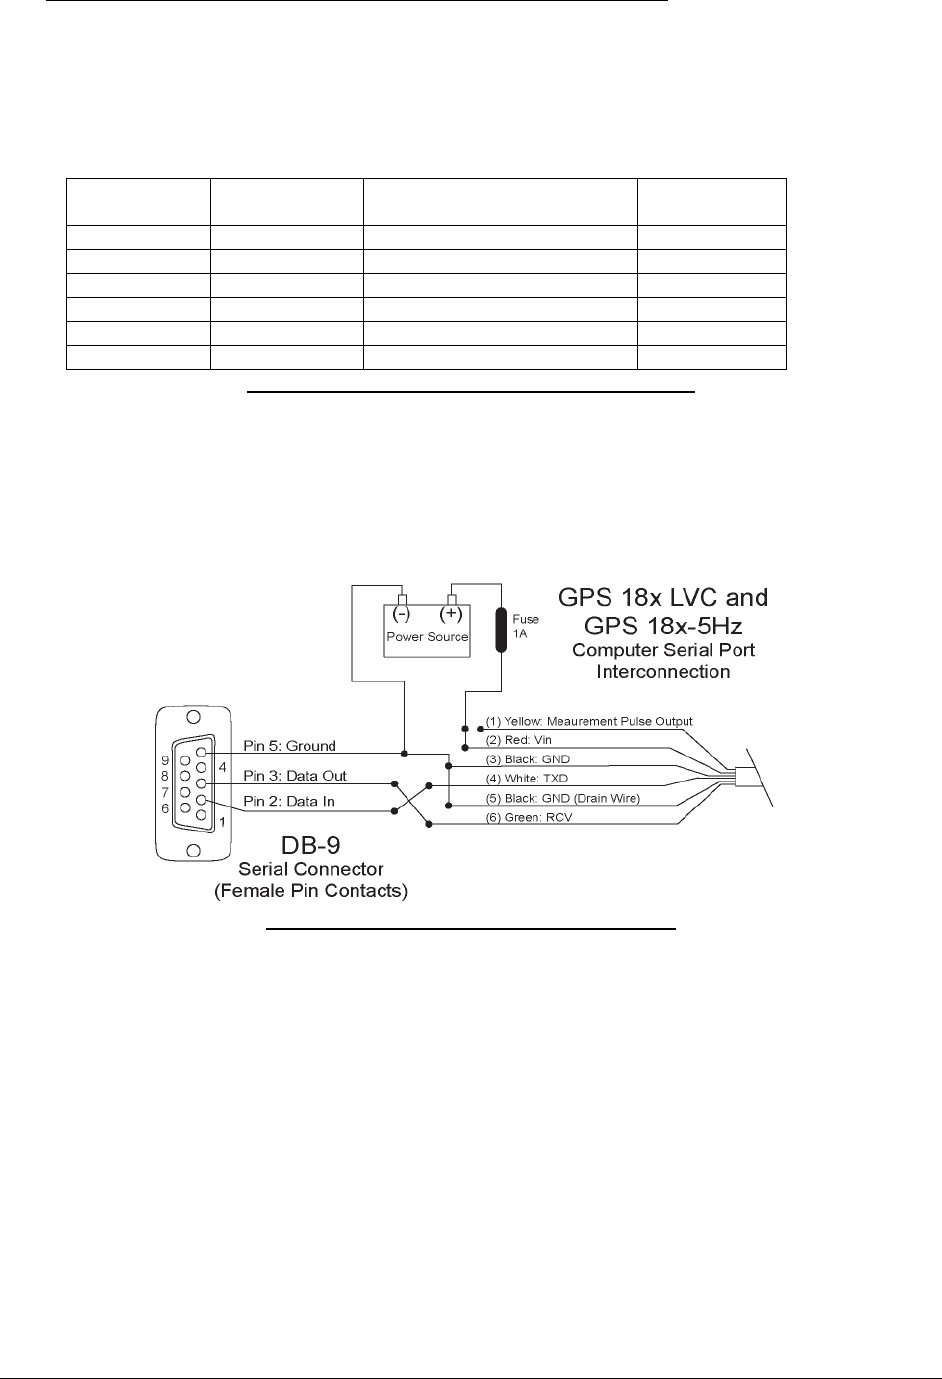 Garmin Gps 18x Users Manual Serial Cable Pinout In Addition 9 Pin To 25 Rs232 Diagram 2 Gpsx Lvc 5hz Wiring And Pinouts